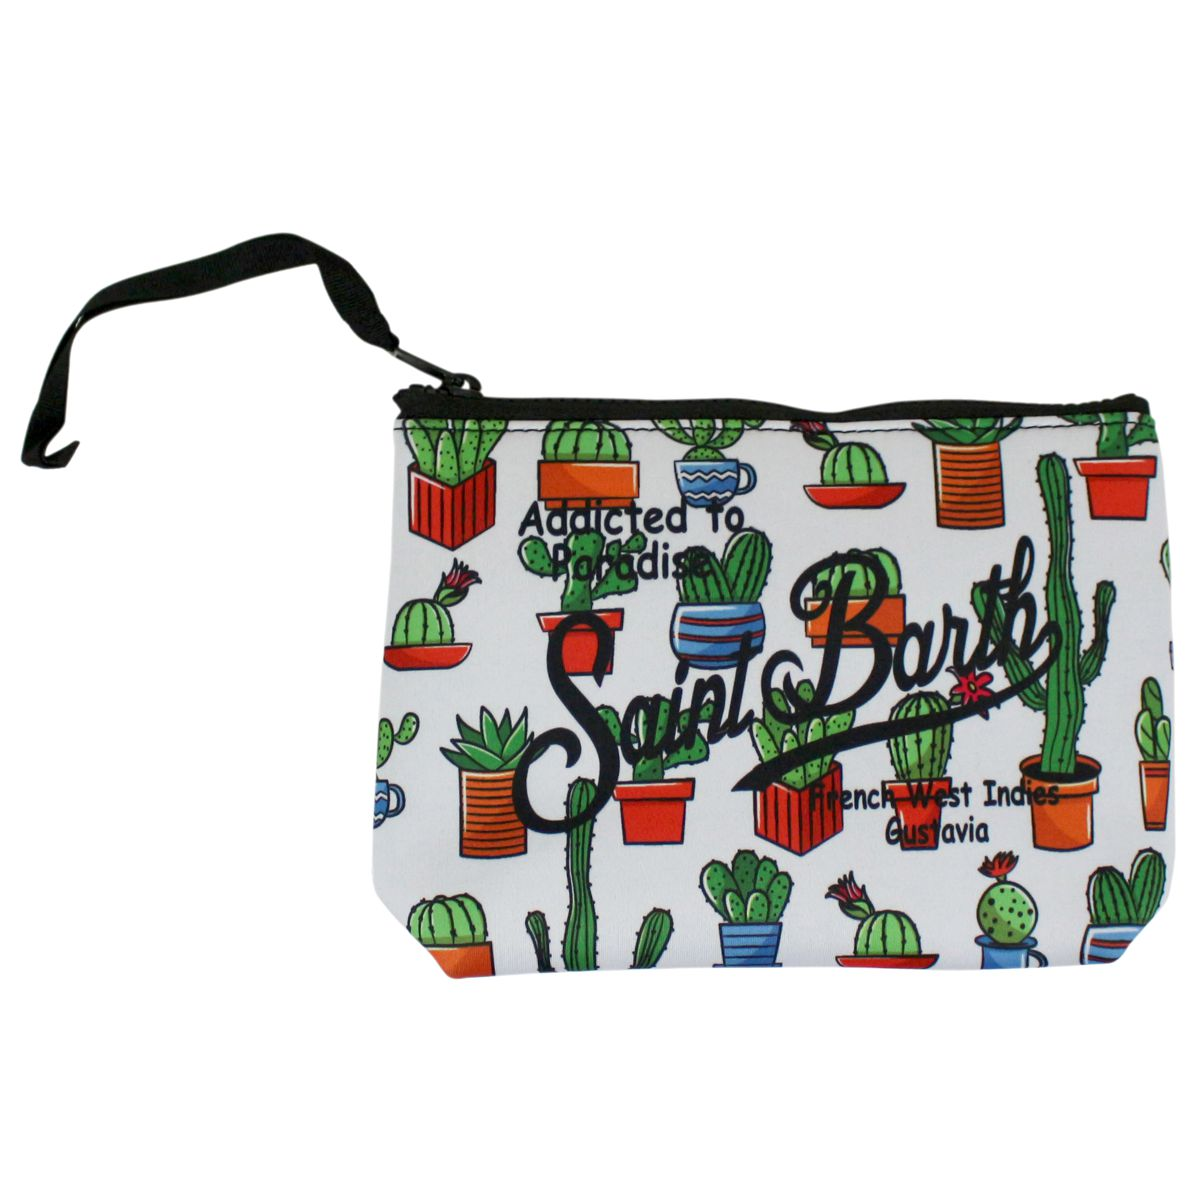 Pochette in canvas with cactus print White green MC2 SAINT BARTH